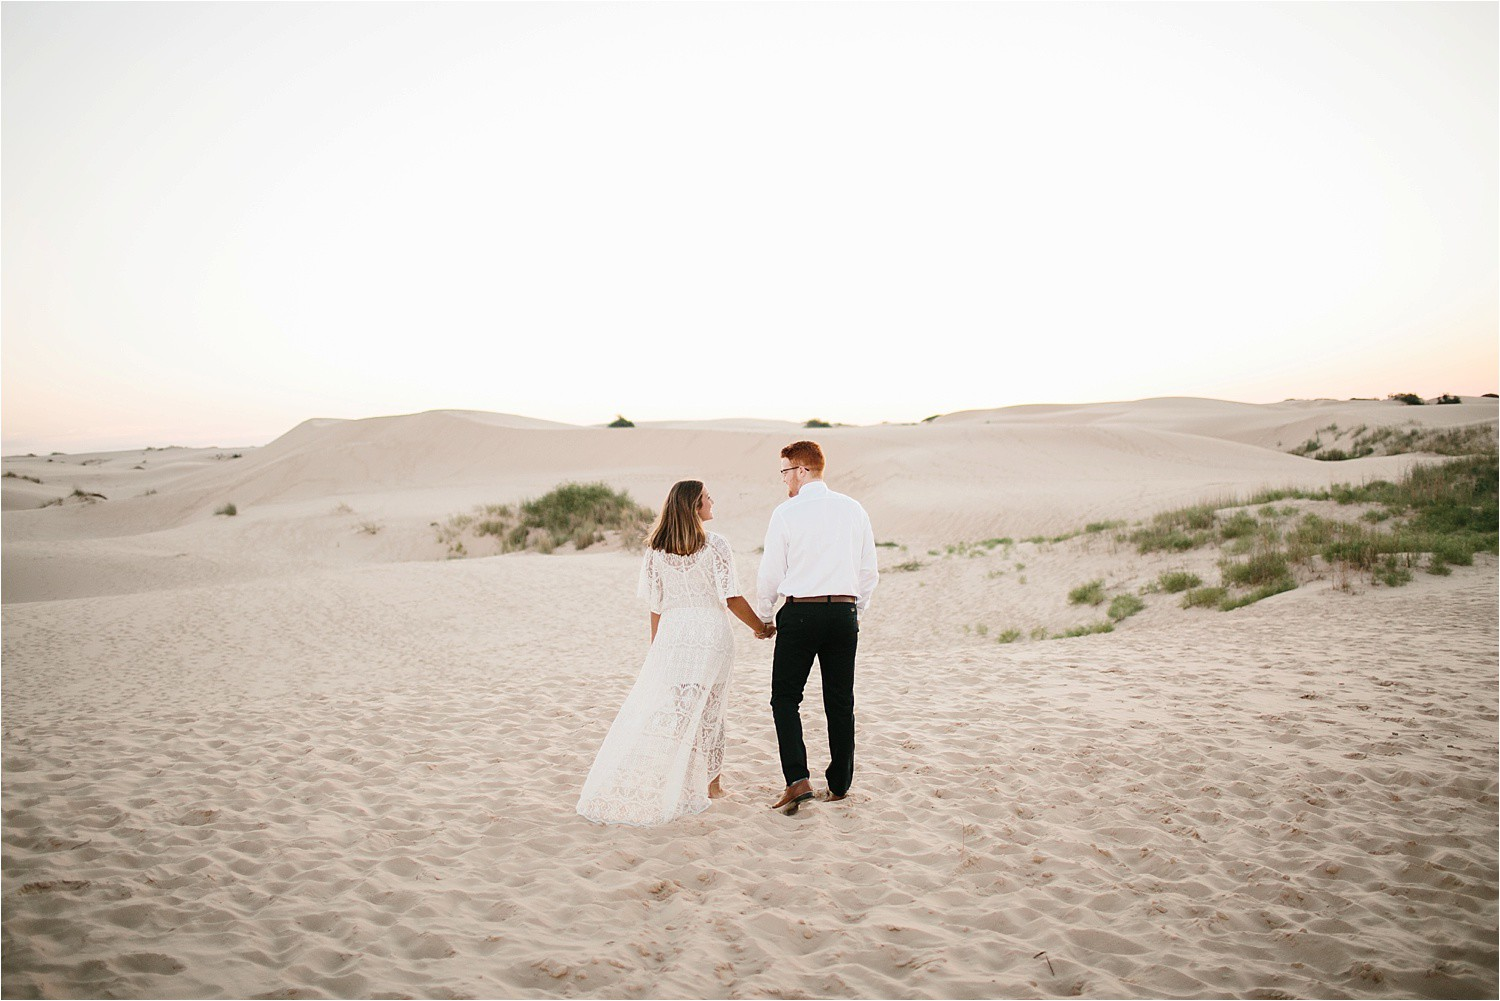 Lauren + Jacob __ a monahans sand dunes engagement session at sunrise by North Texas Wedding Photographer, Rachel Meagan Photography __ 01